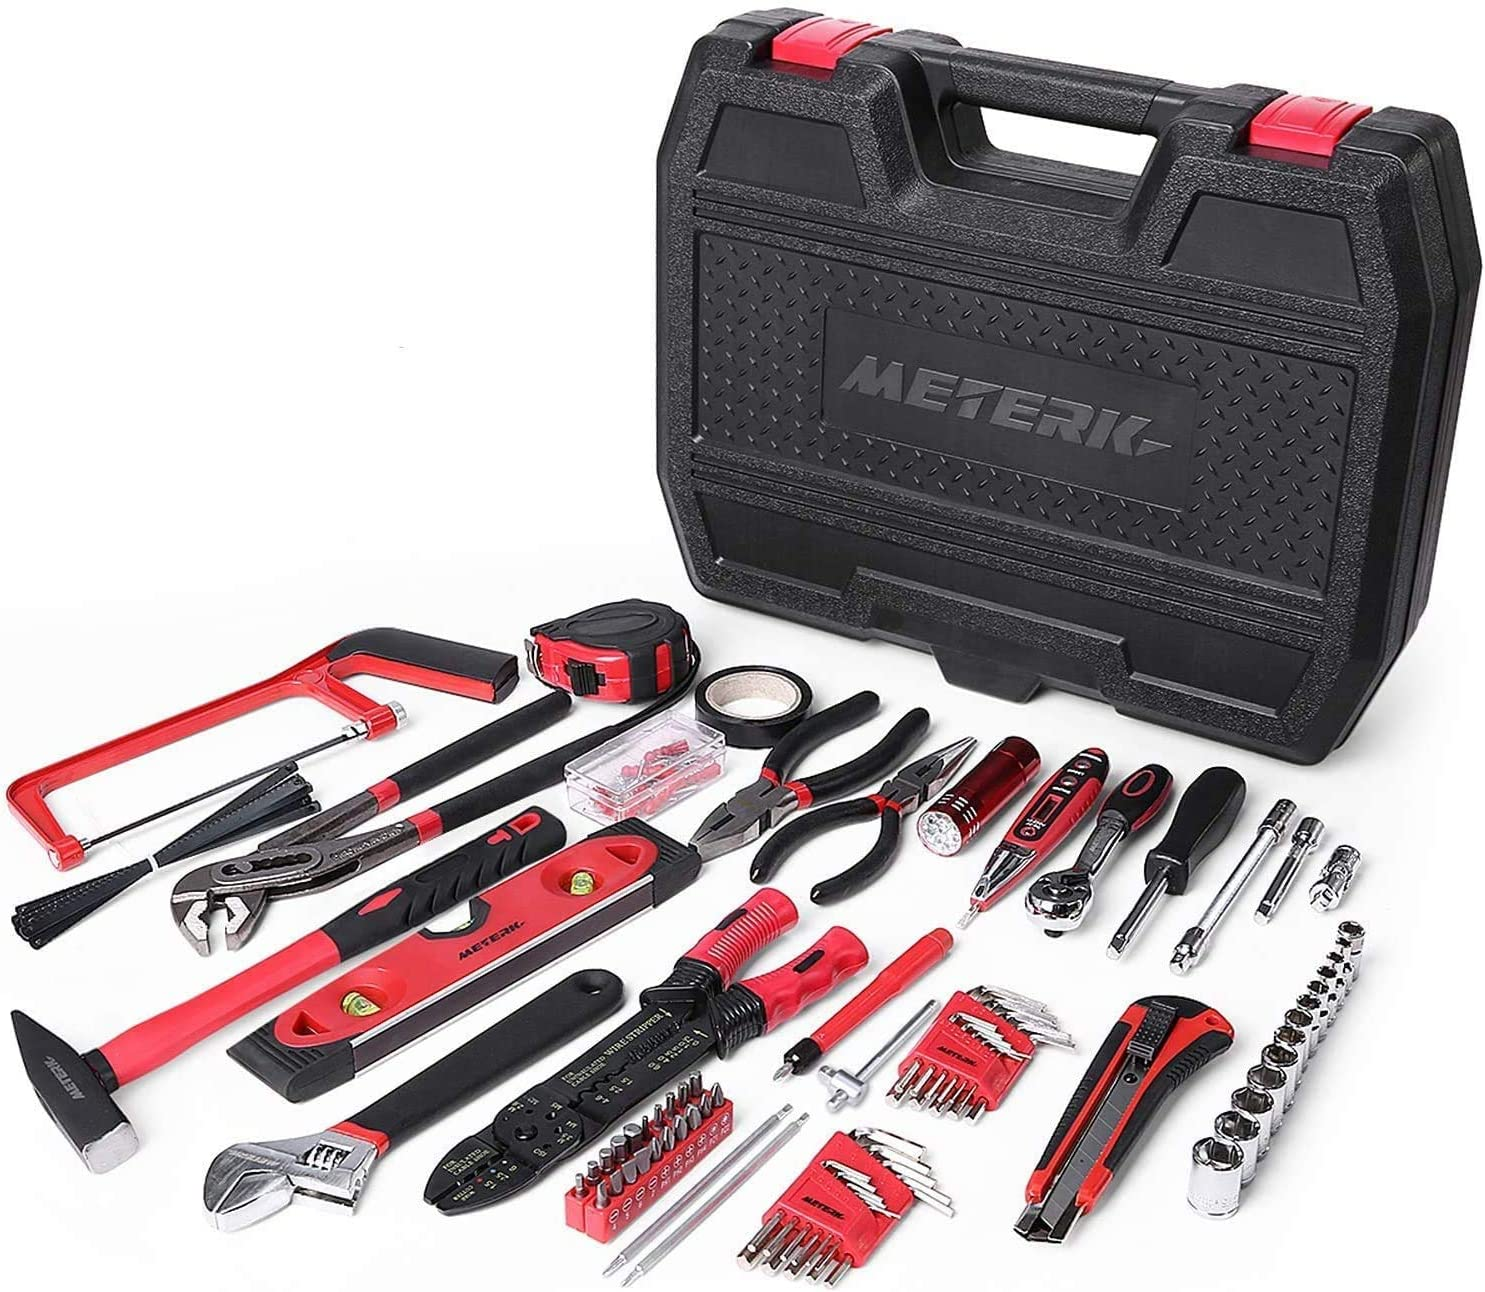 Meterk 170 Pcs Home Tool Kit- Household/Auto Repair Mechanic Tool Set with Wrenches, Screwdriver Set, Sockets Kit, Hammer, Pliers and Toolbox Storage Case for Homeowner, DIYER, Handyman